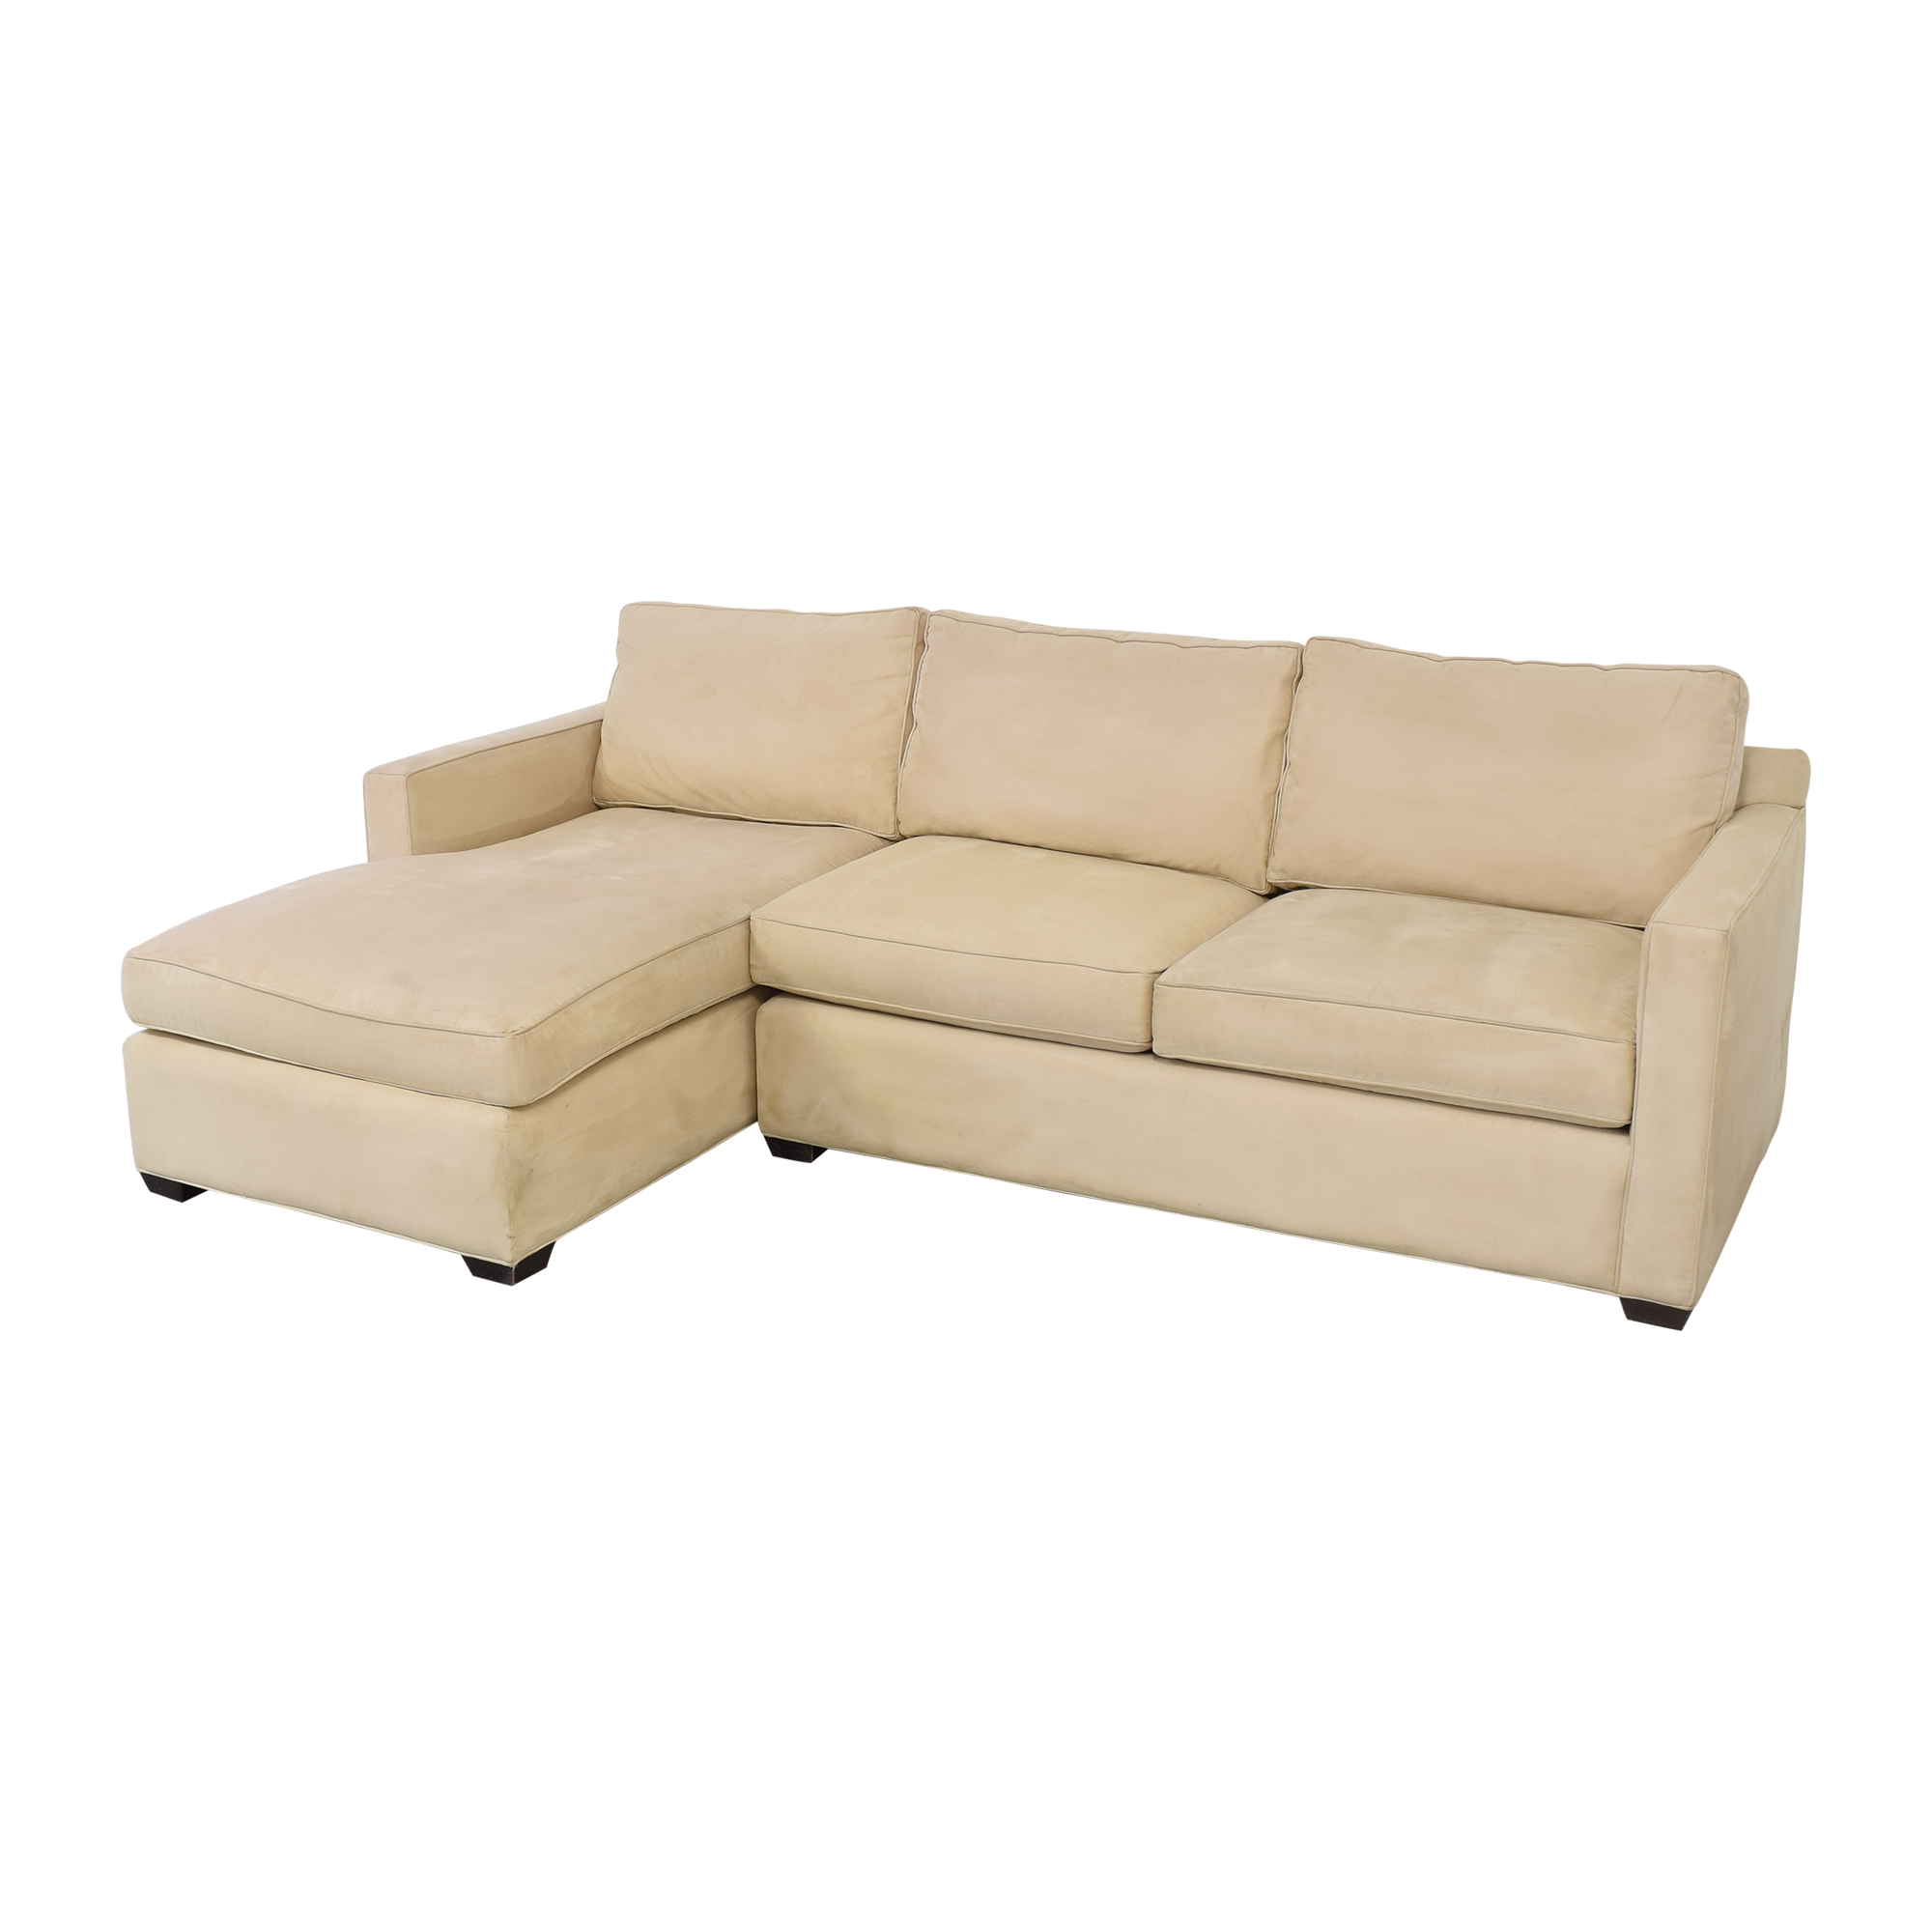 Crate & Barrel Crate & Barrel Davis Chaise Sectional Sofa used